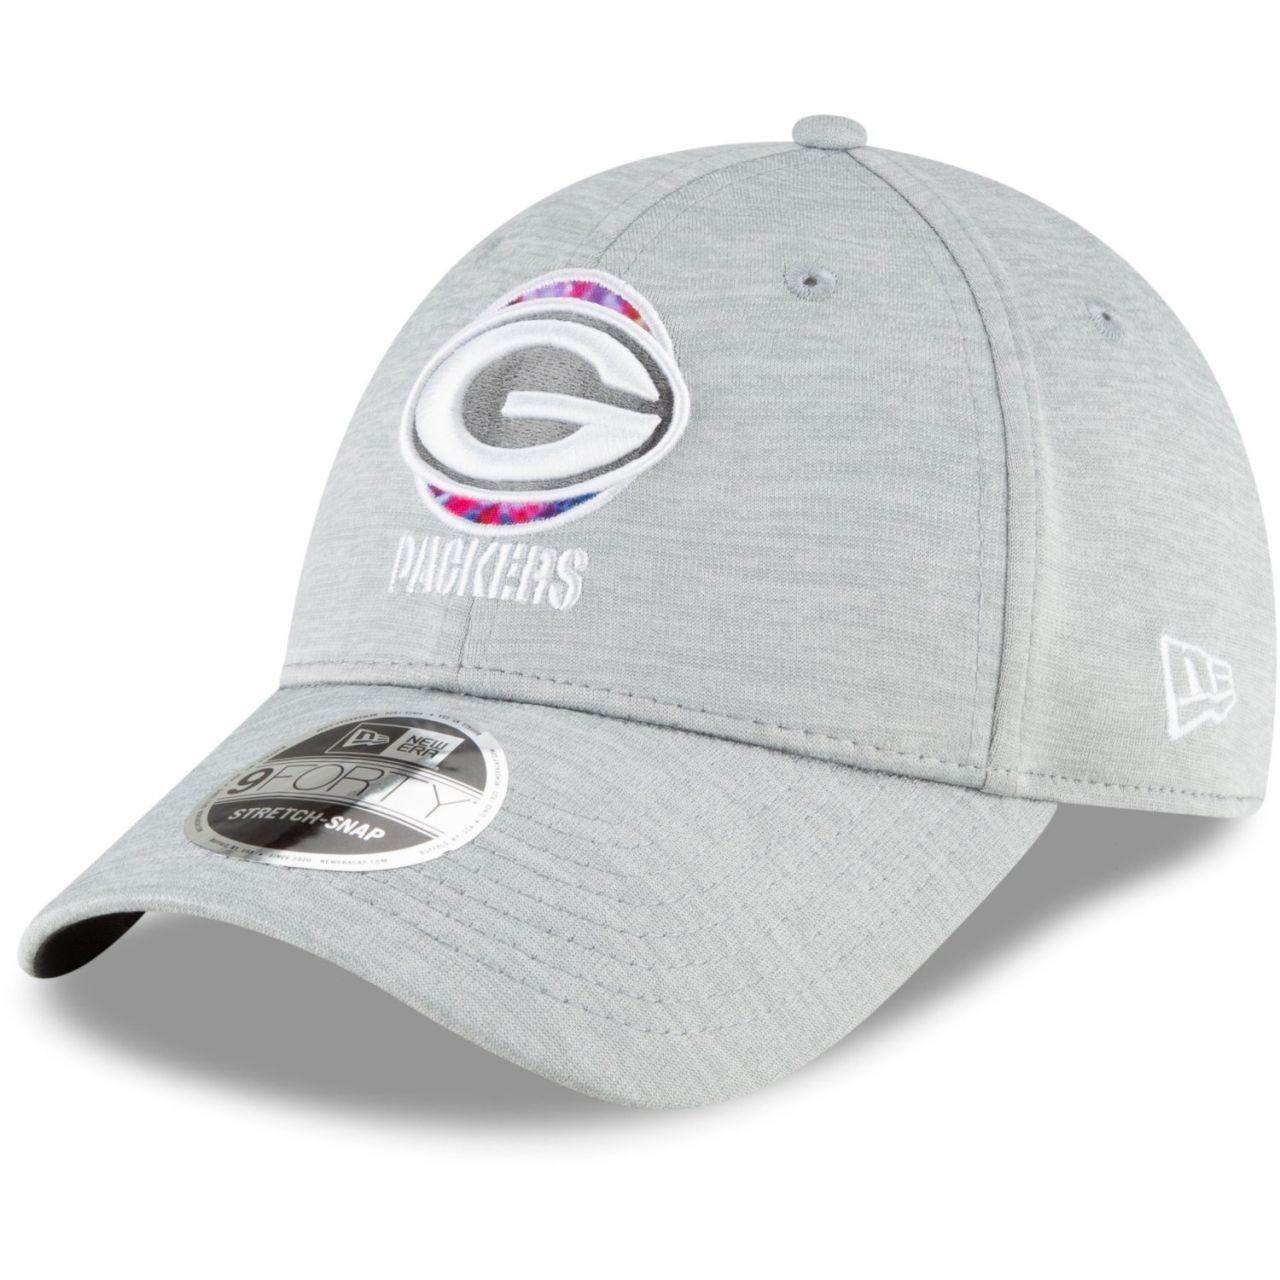 amfoo - New Era 9FORTY Stretch Cap - CRUCIAL CATCH Green Bay Packers